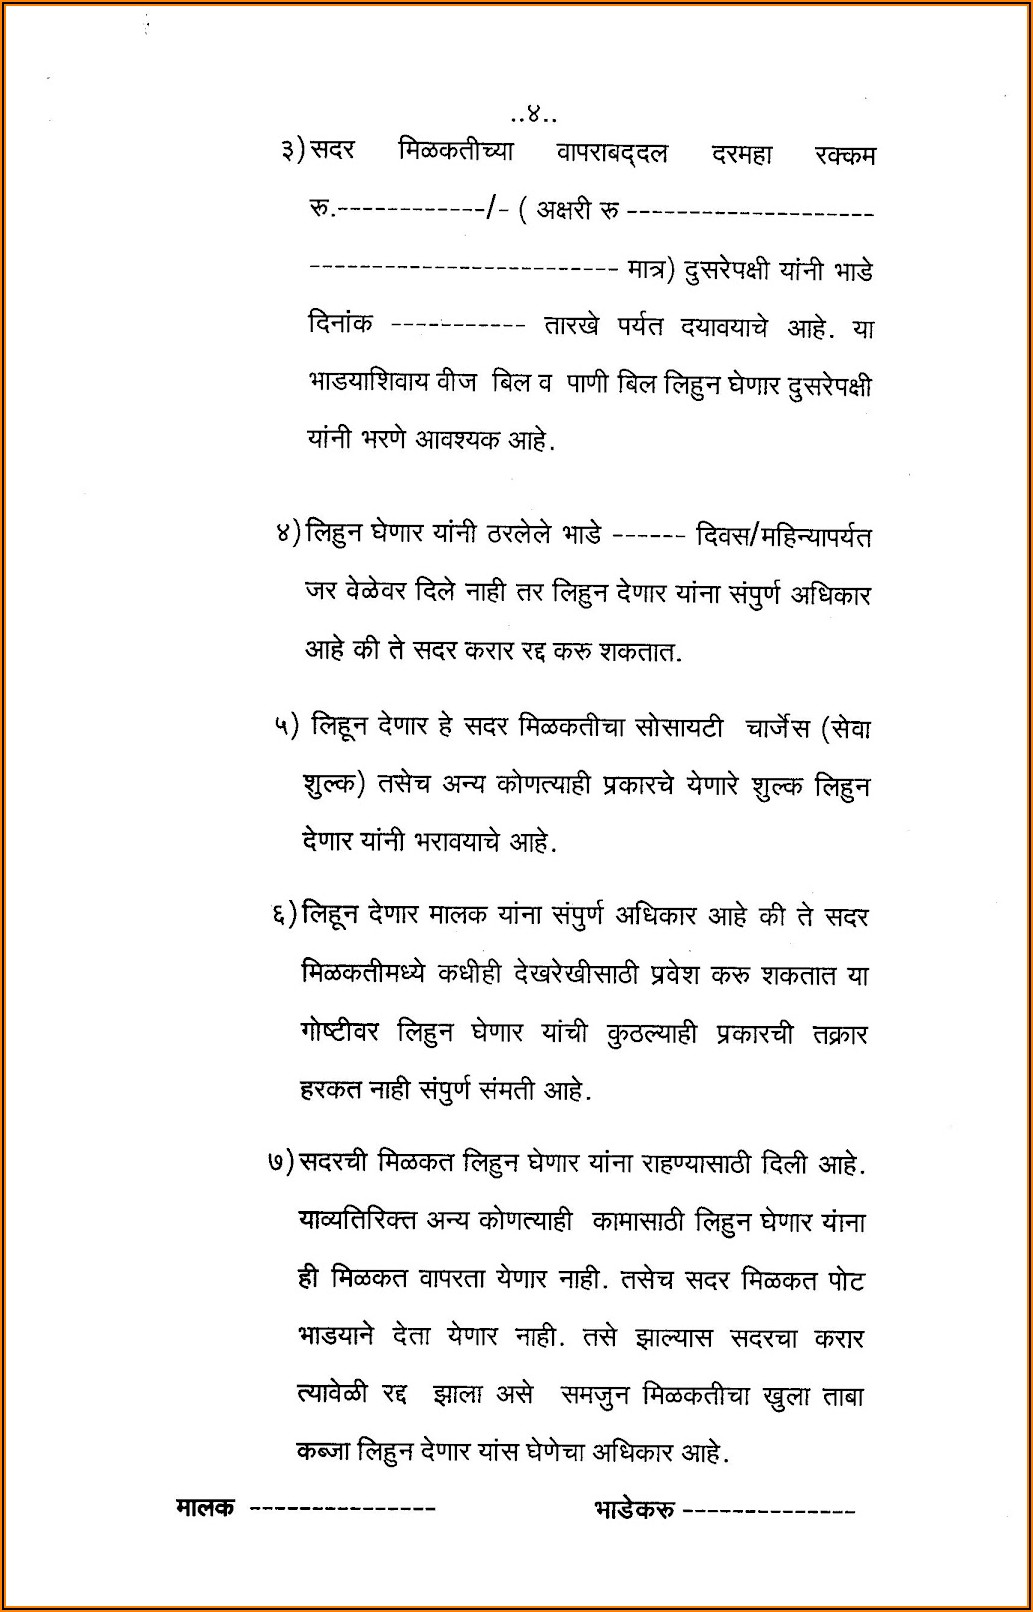 Agriculture Land Lease Agreement Format In Hindi